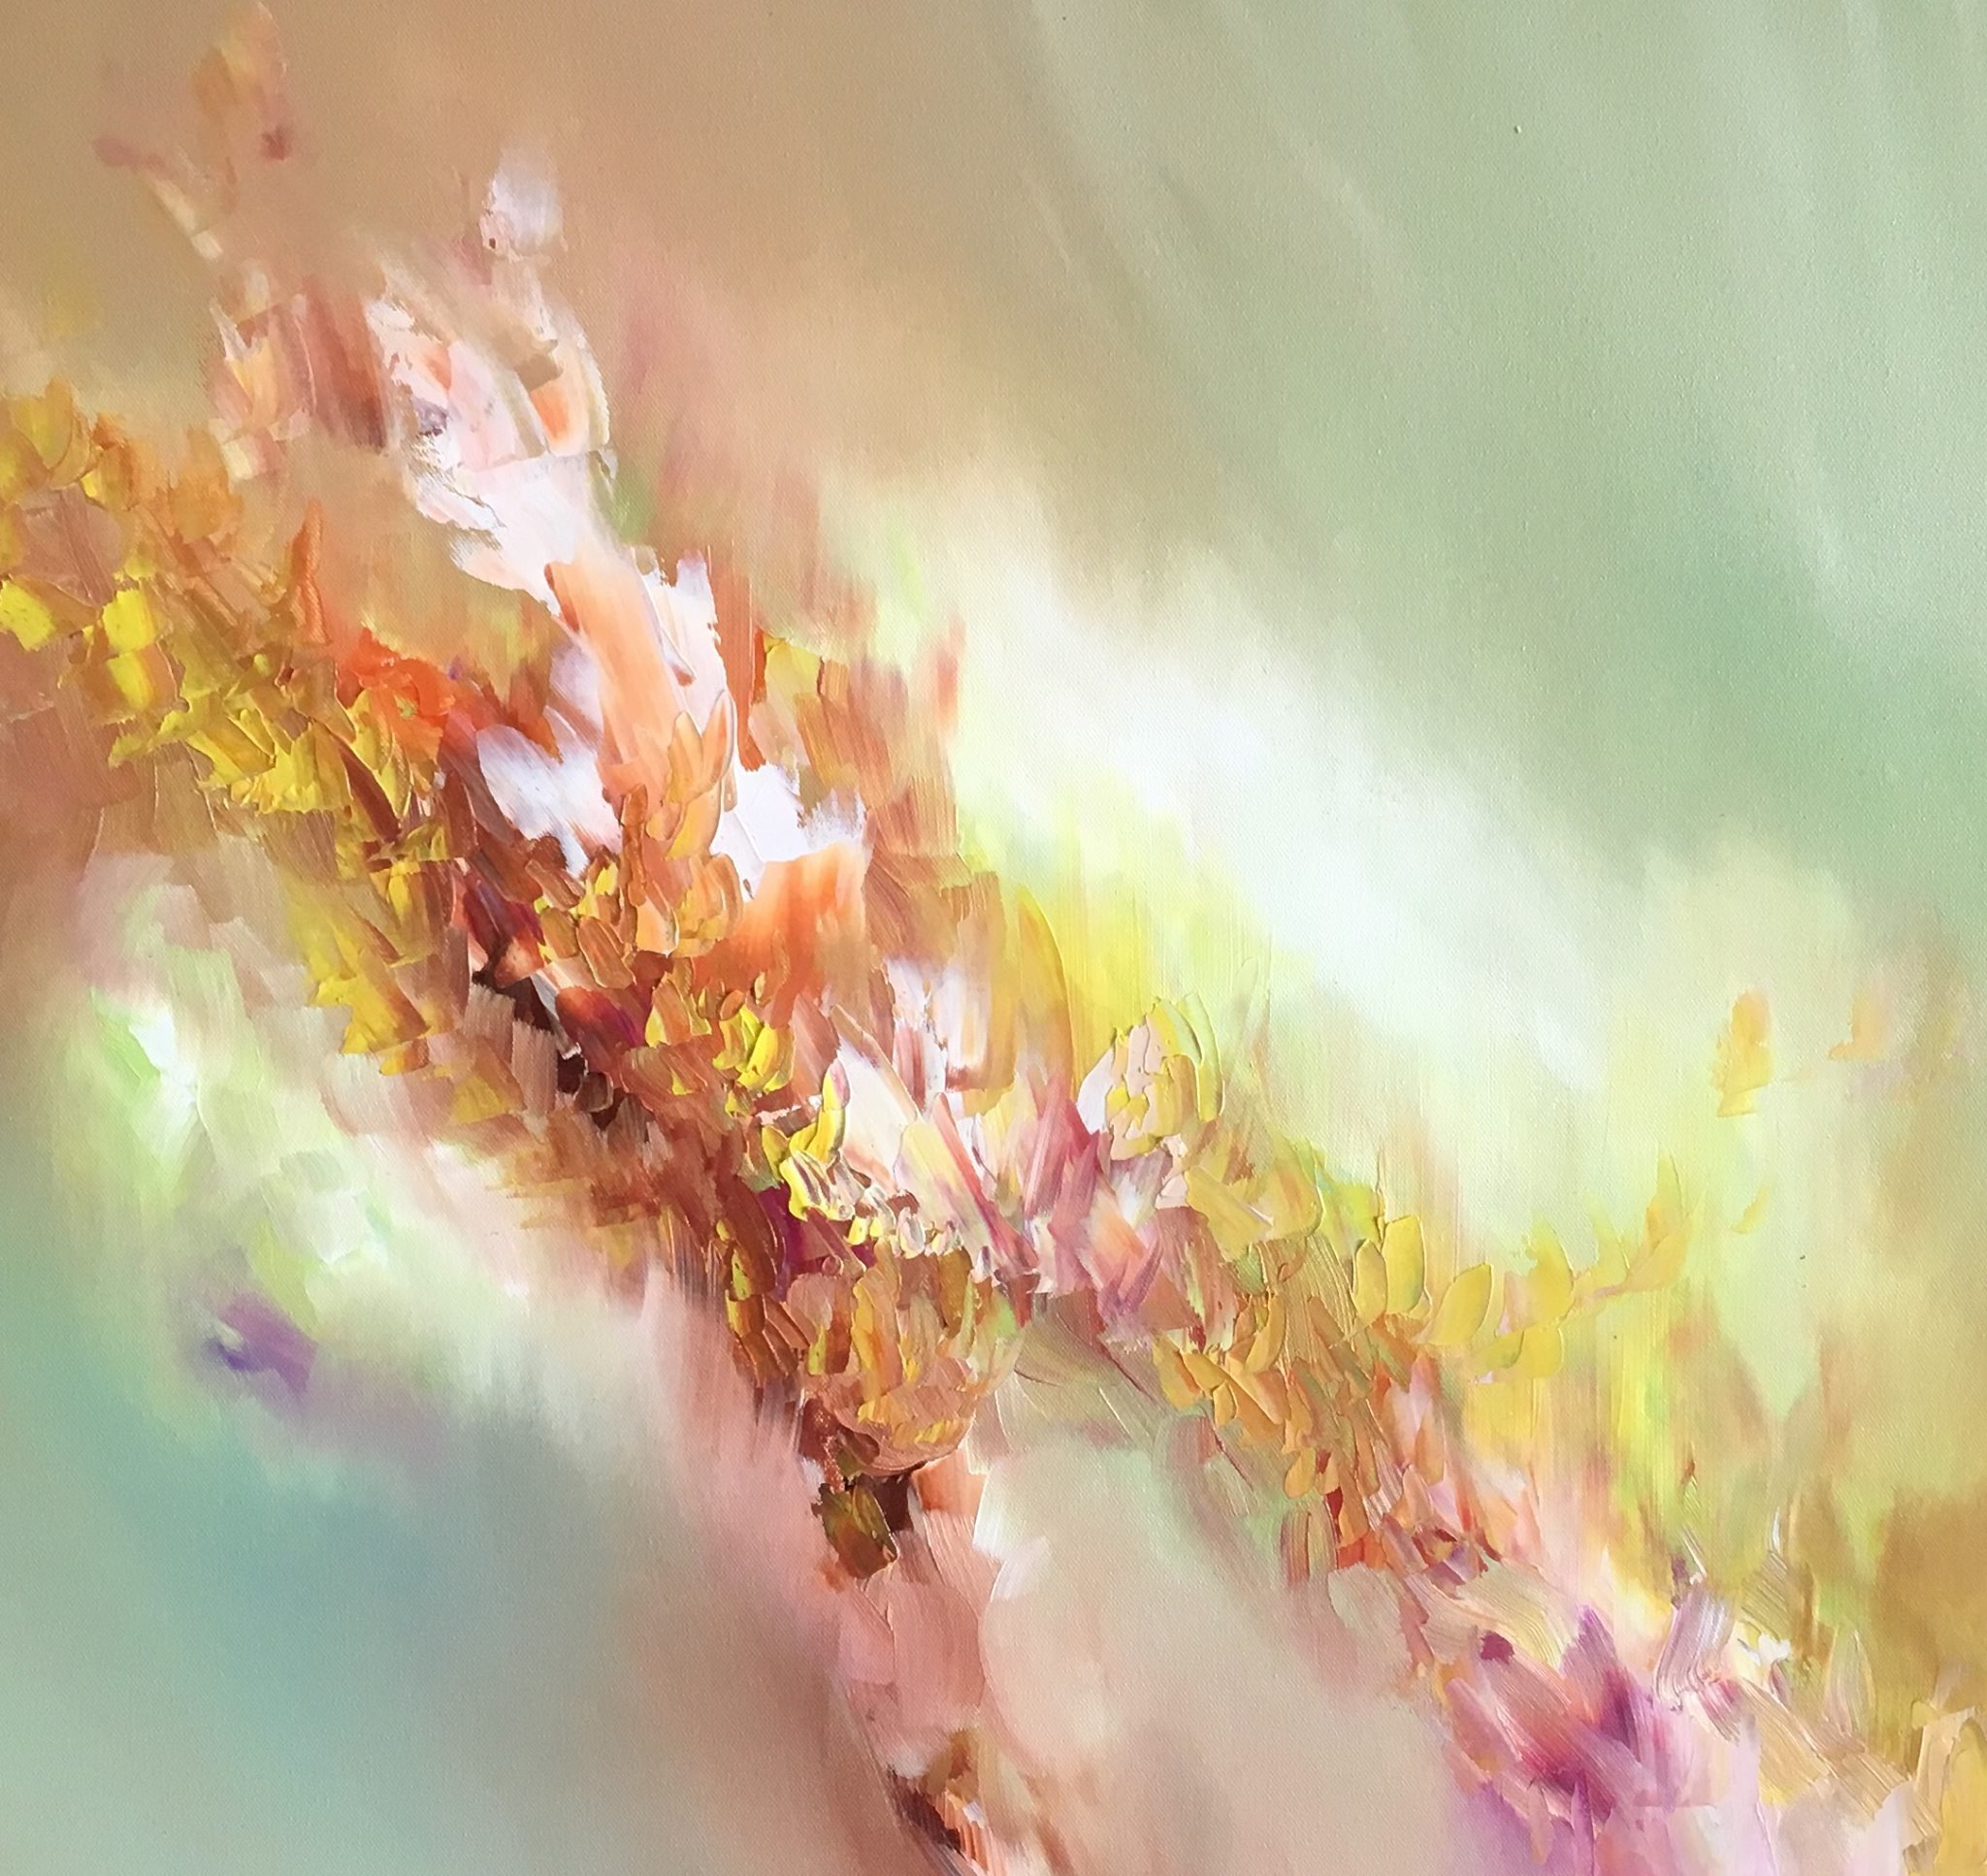 This artist with synesthesia sees colors in music and paints your favorite songs broadly